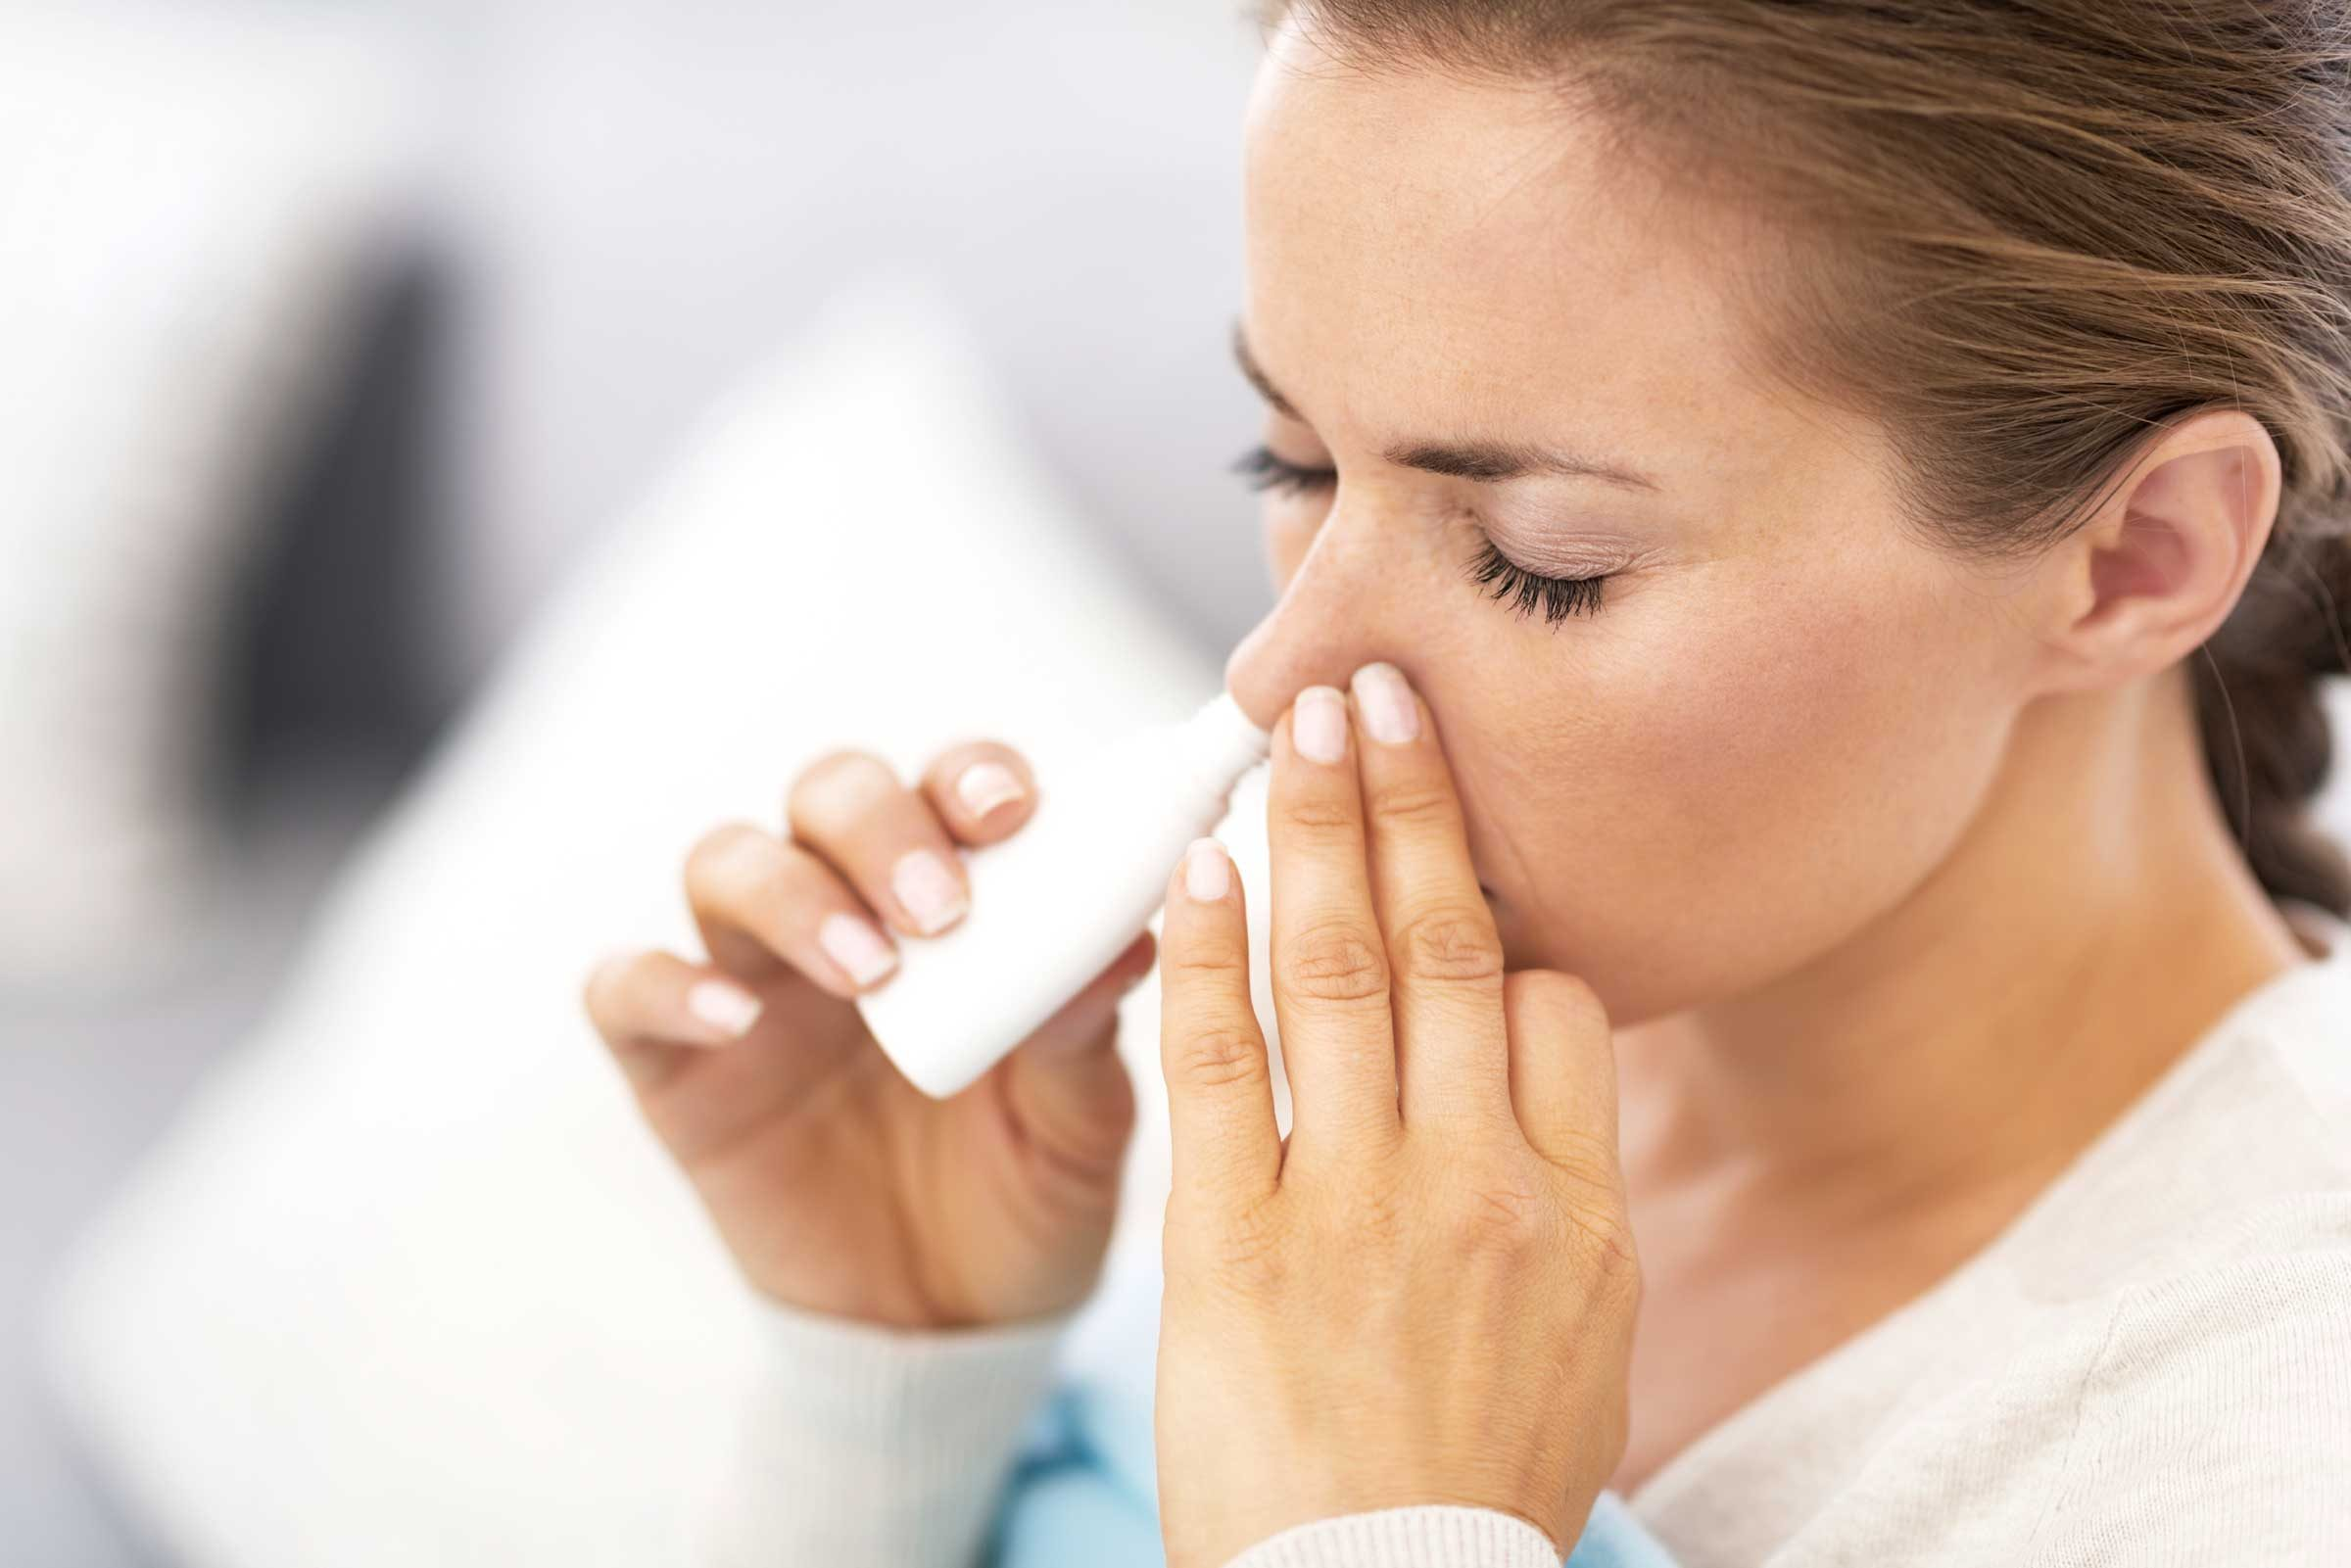 Antihistamines don't work as well as you think